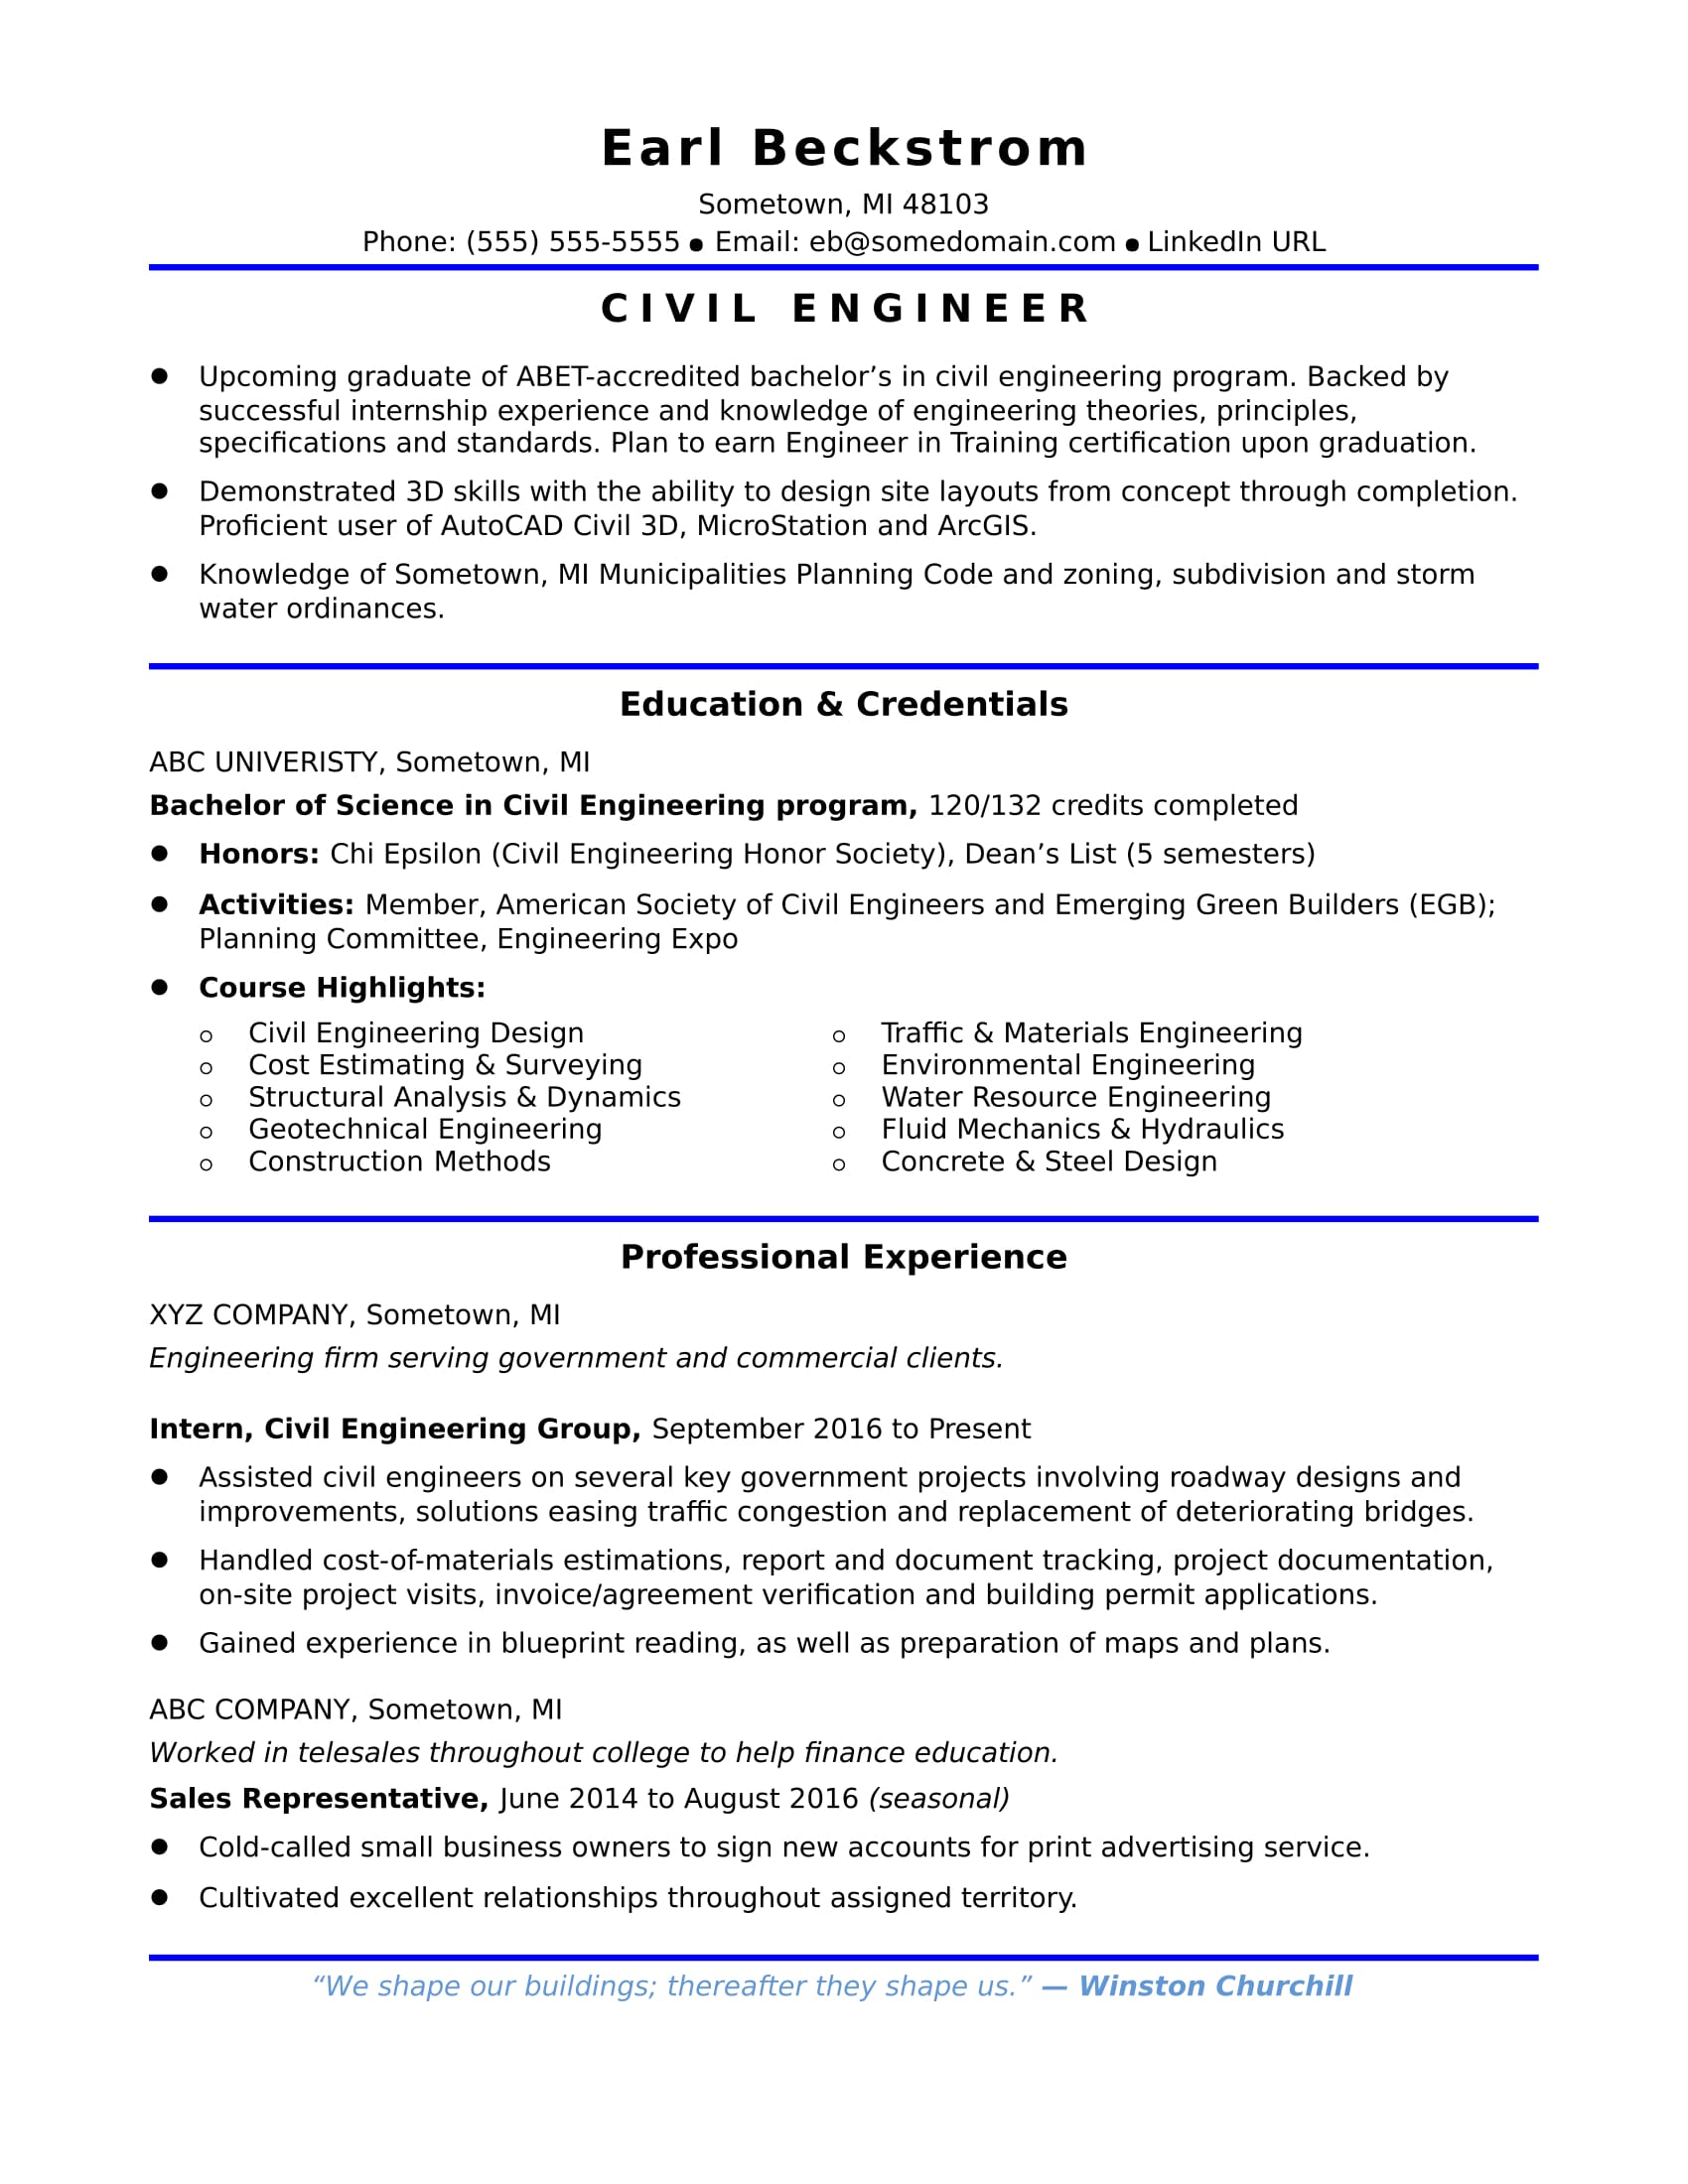 If You Re Just Starting Your Civil Engineering Career Check Out This Entry Level Civil Engineer Resume Sample Engineering Resume Civil Engineer Resume Internship Resume